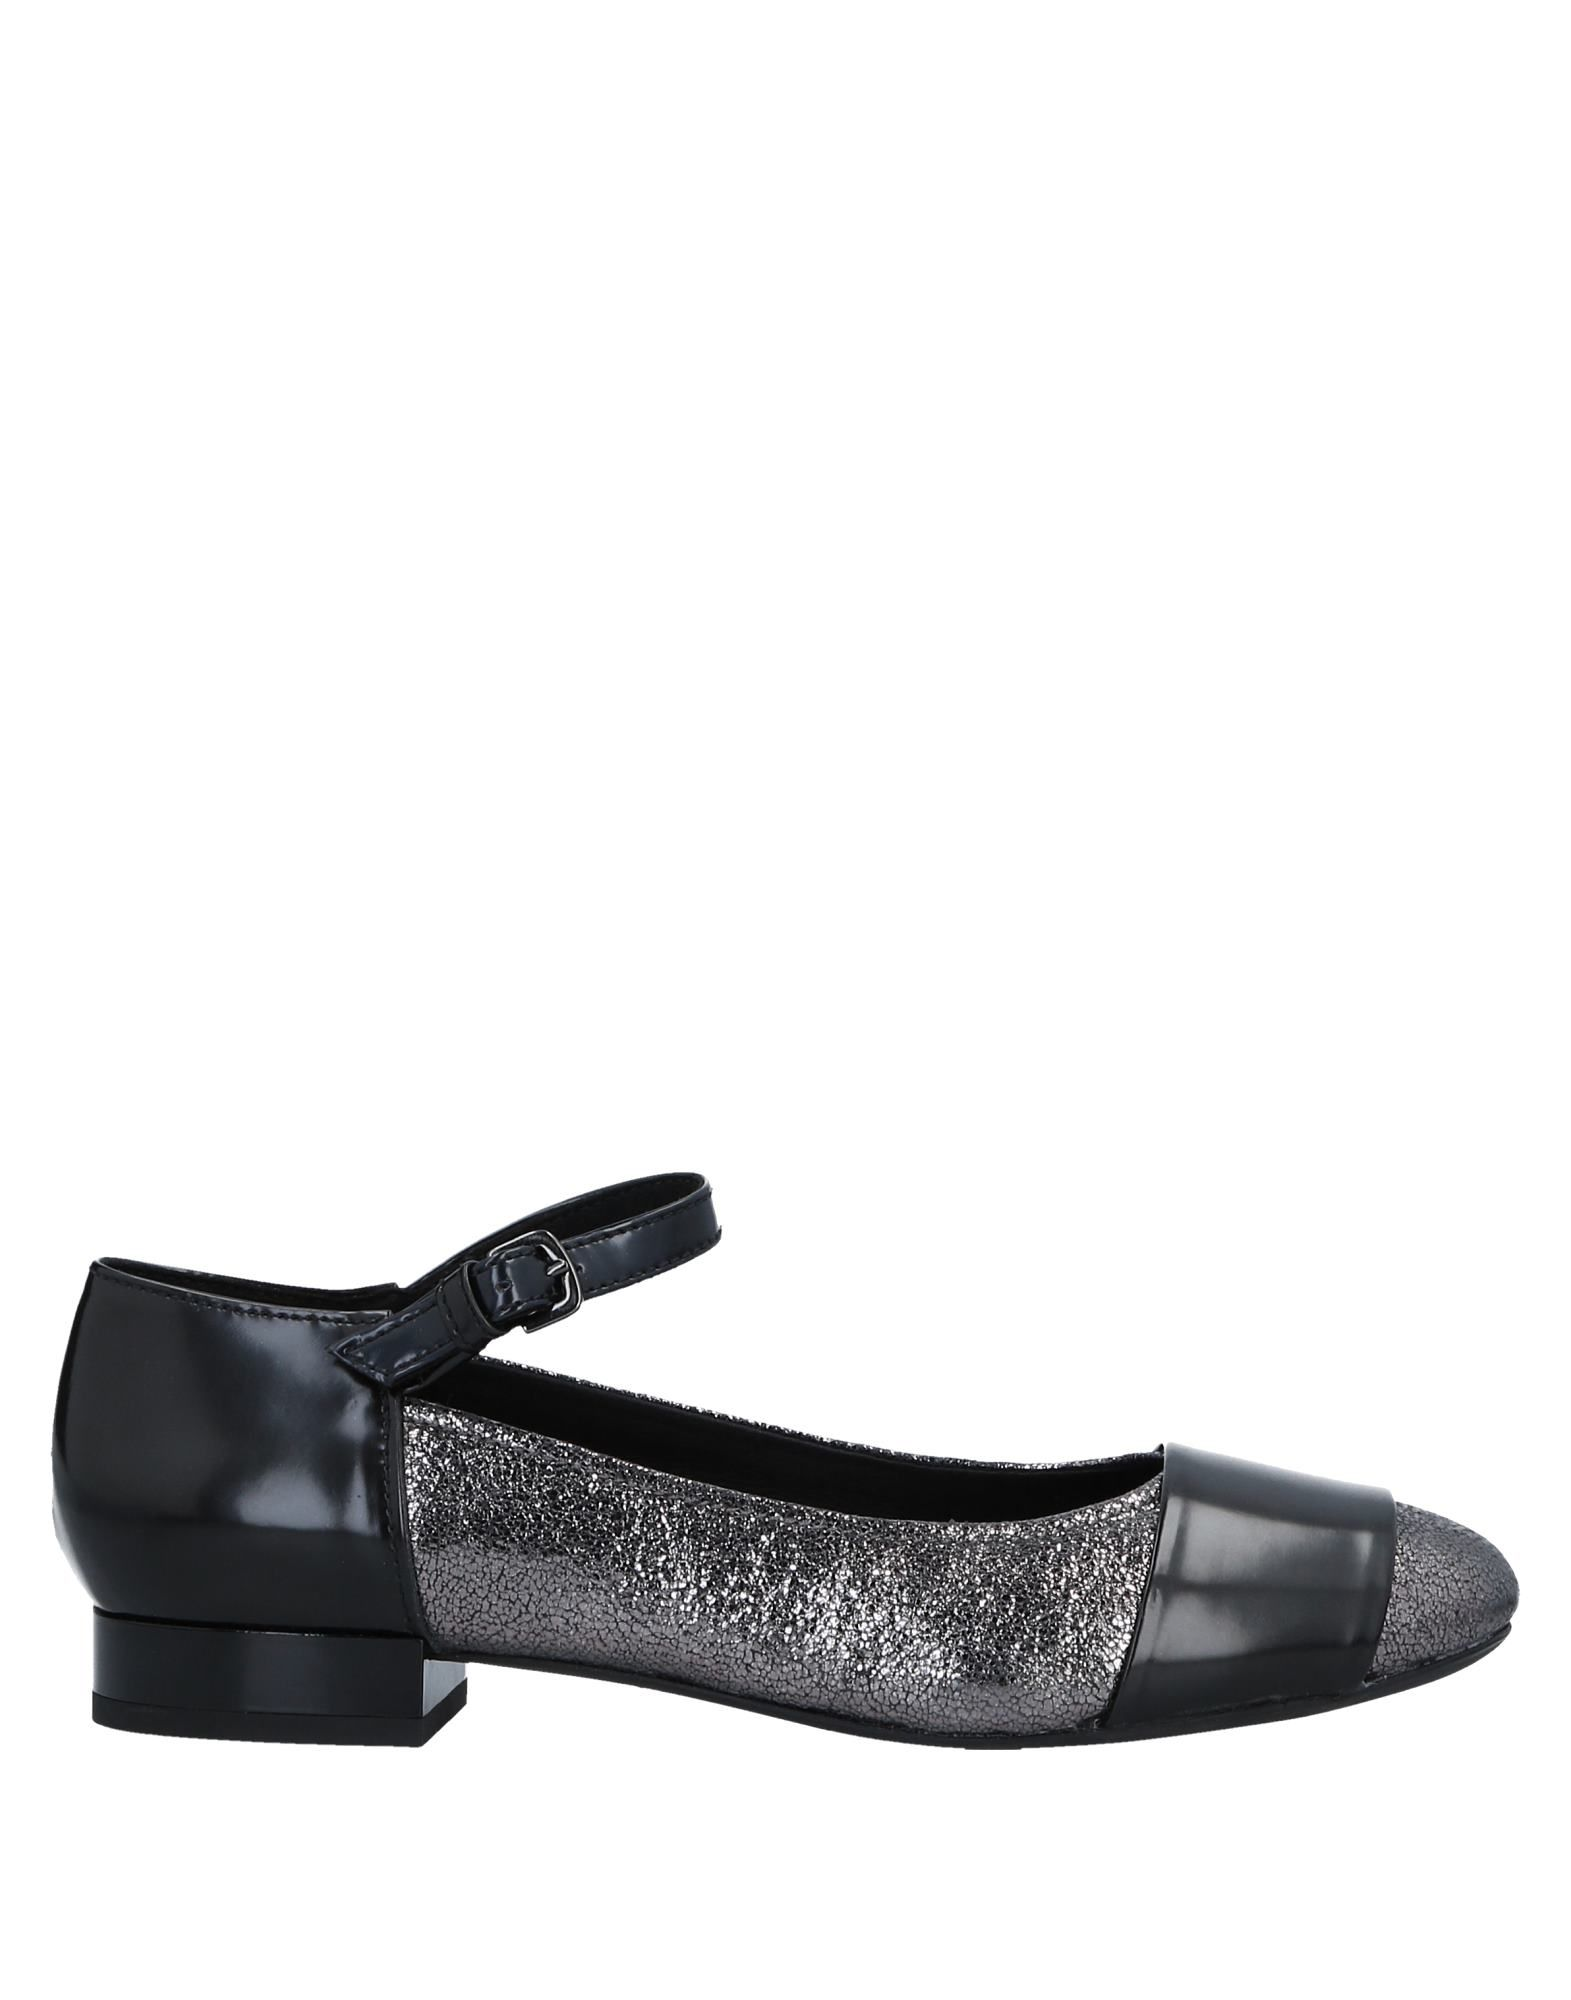 Geox Ballerinas Damen  11539534DX